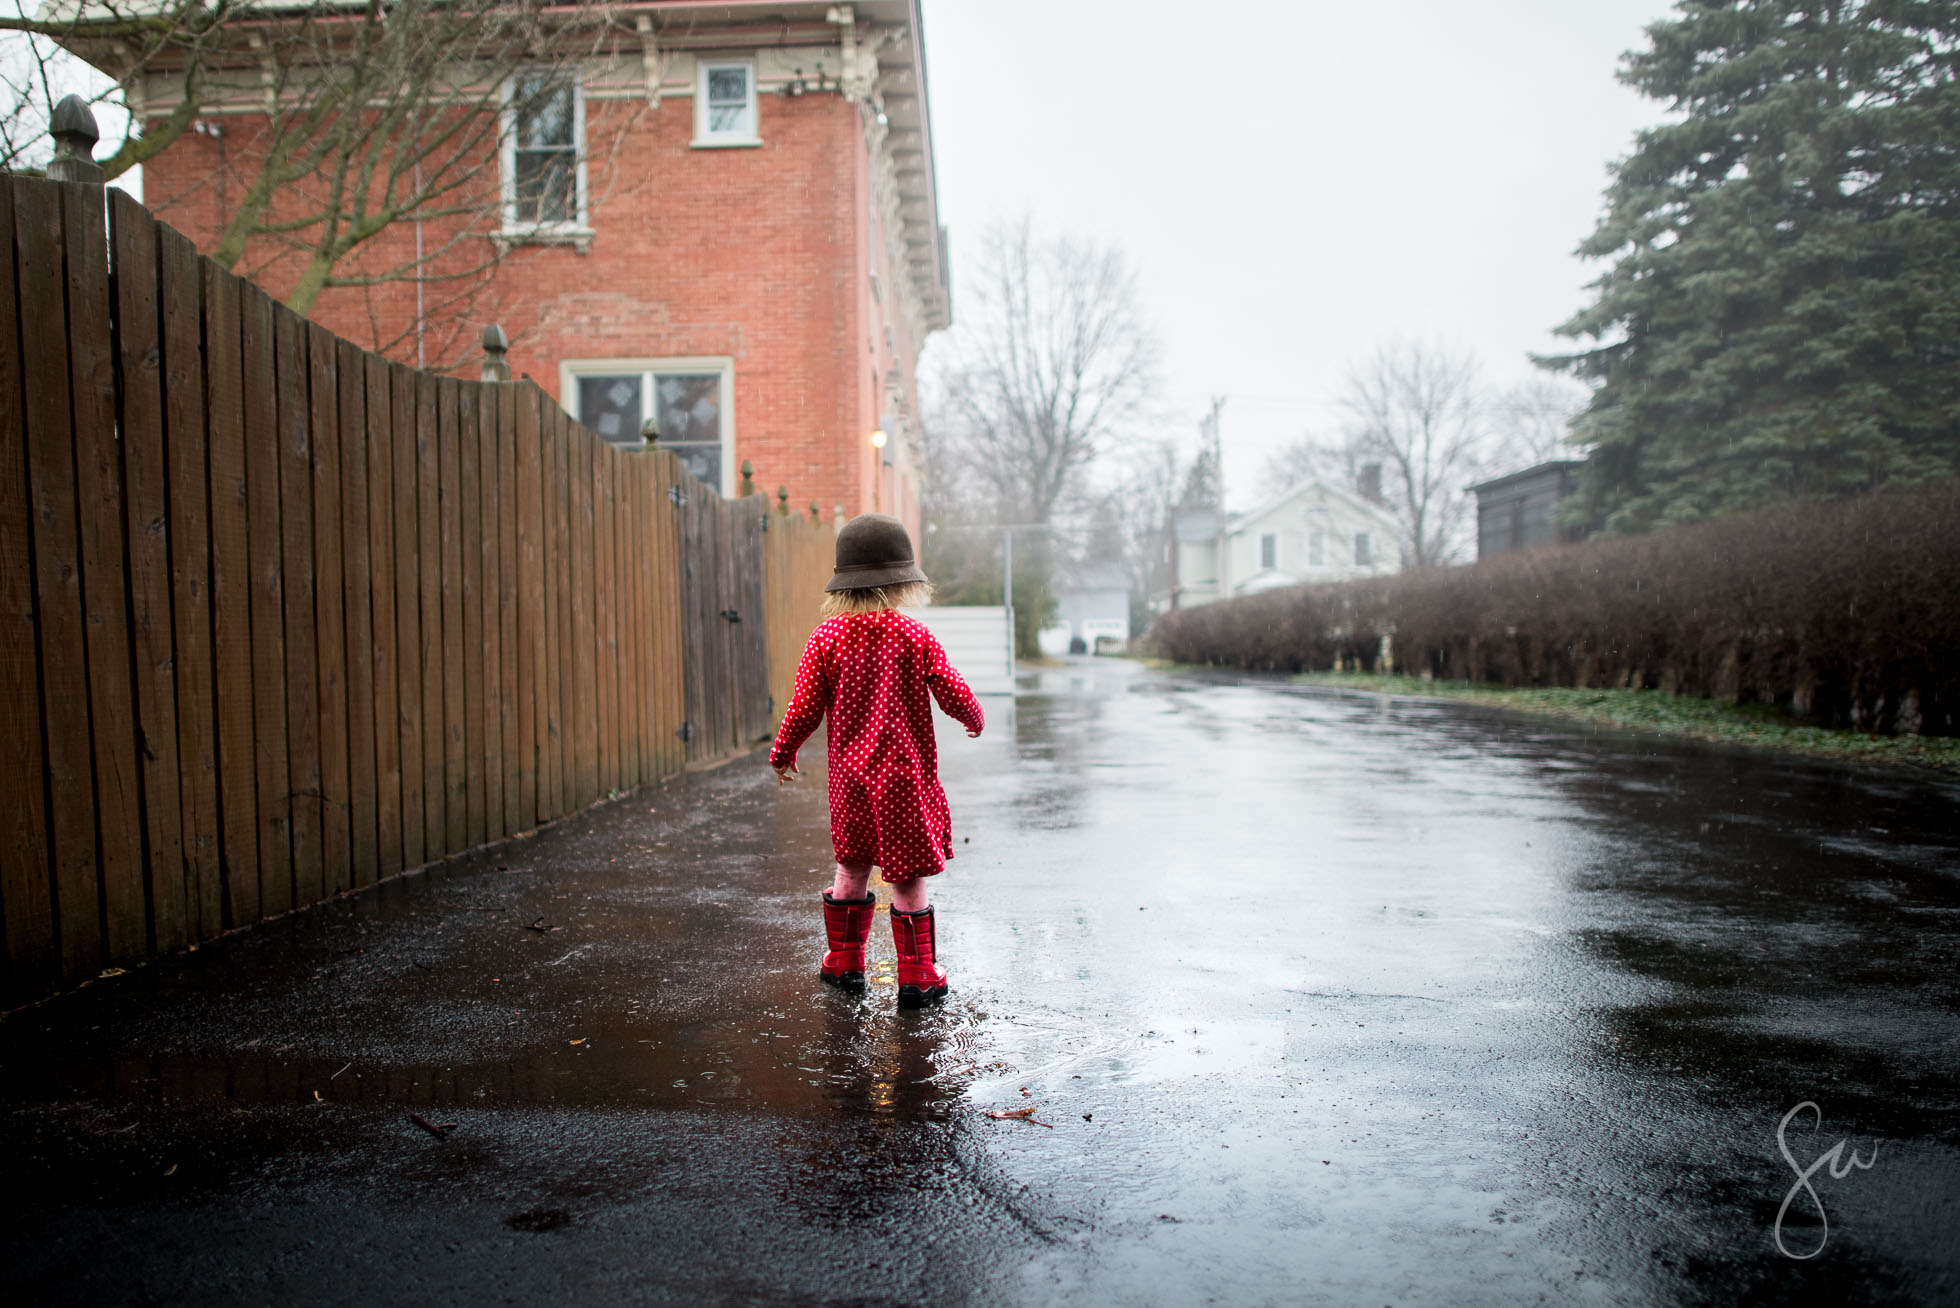 Little-Girl-in-Polka-Dots-Red-Boots-and-a-Cloche-Hat-Playing-outside-on-a-rainy-day-3745